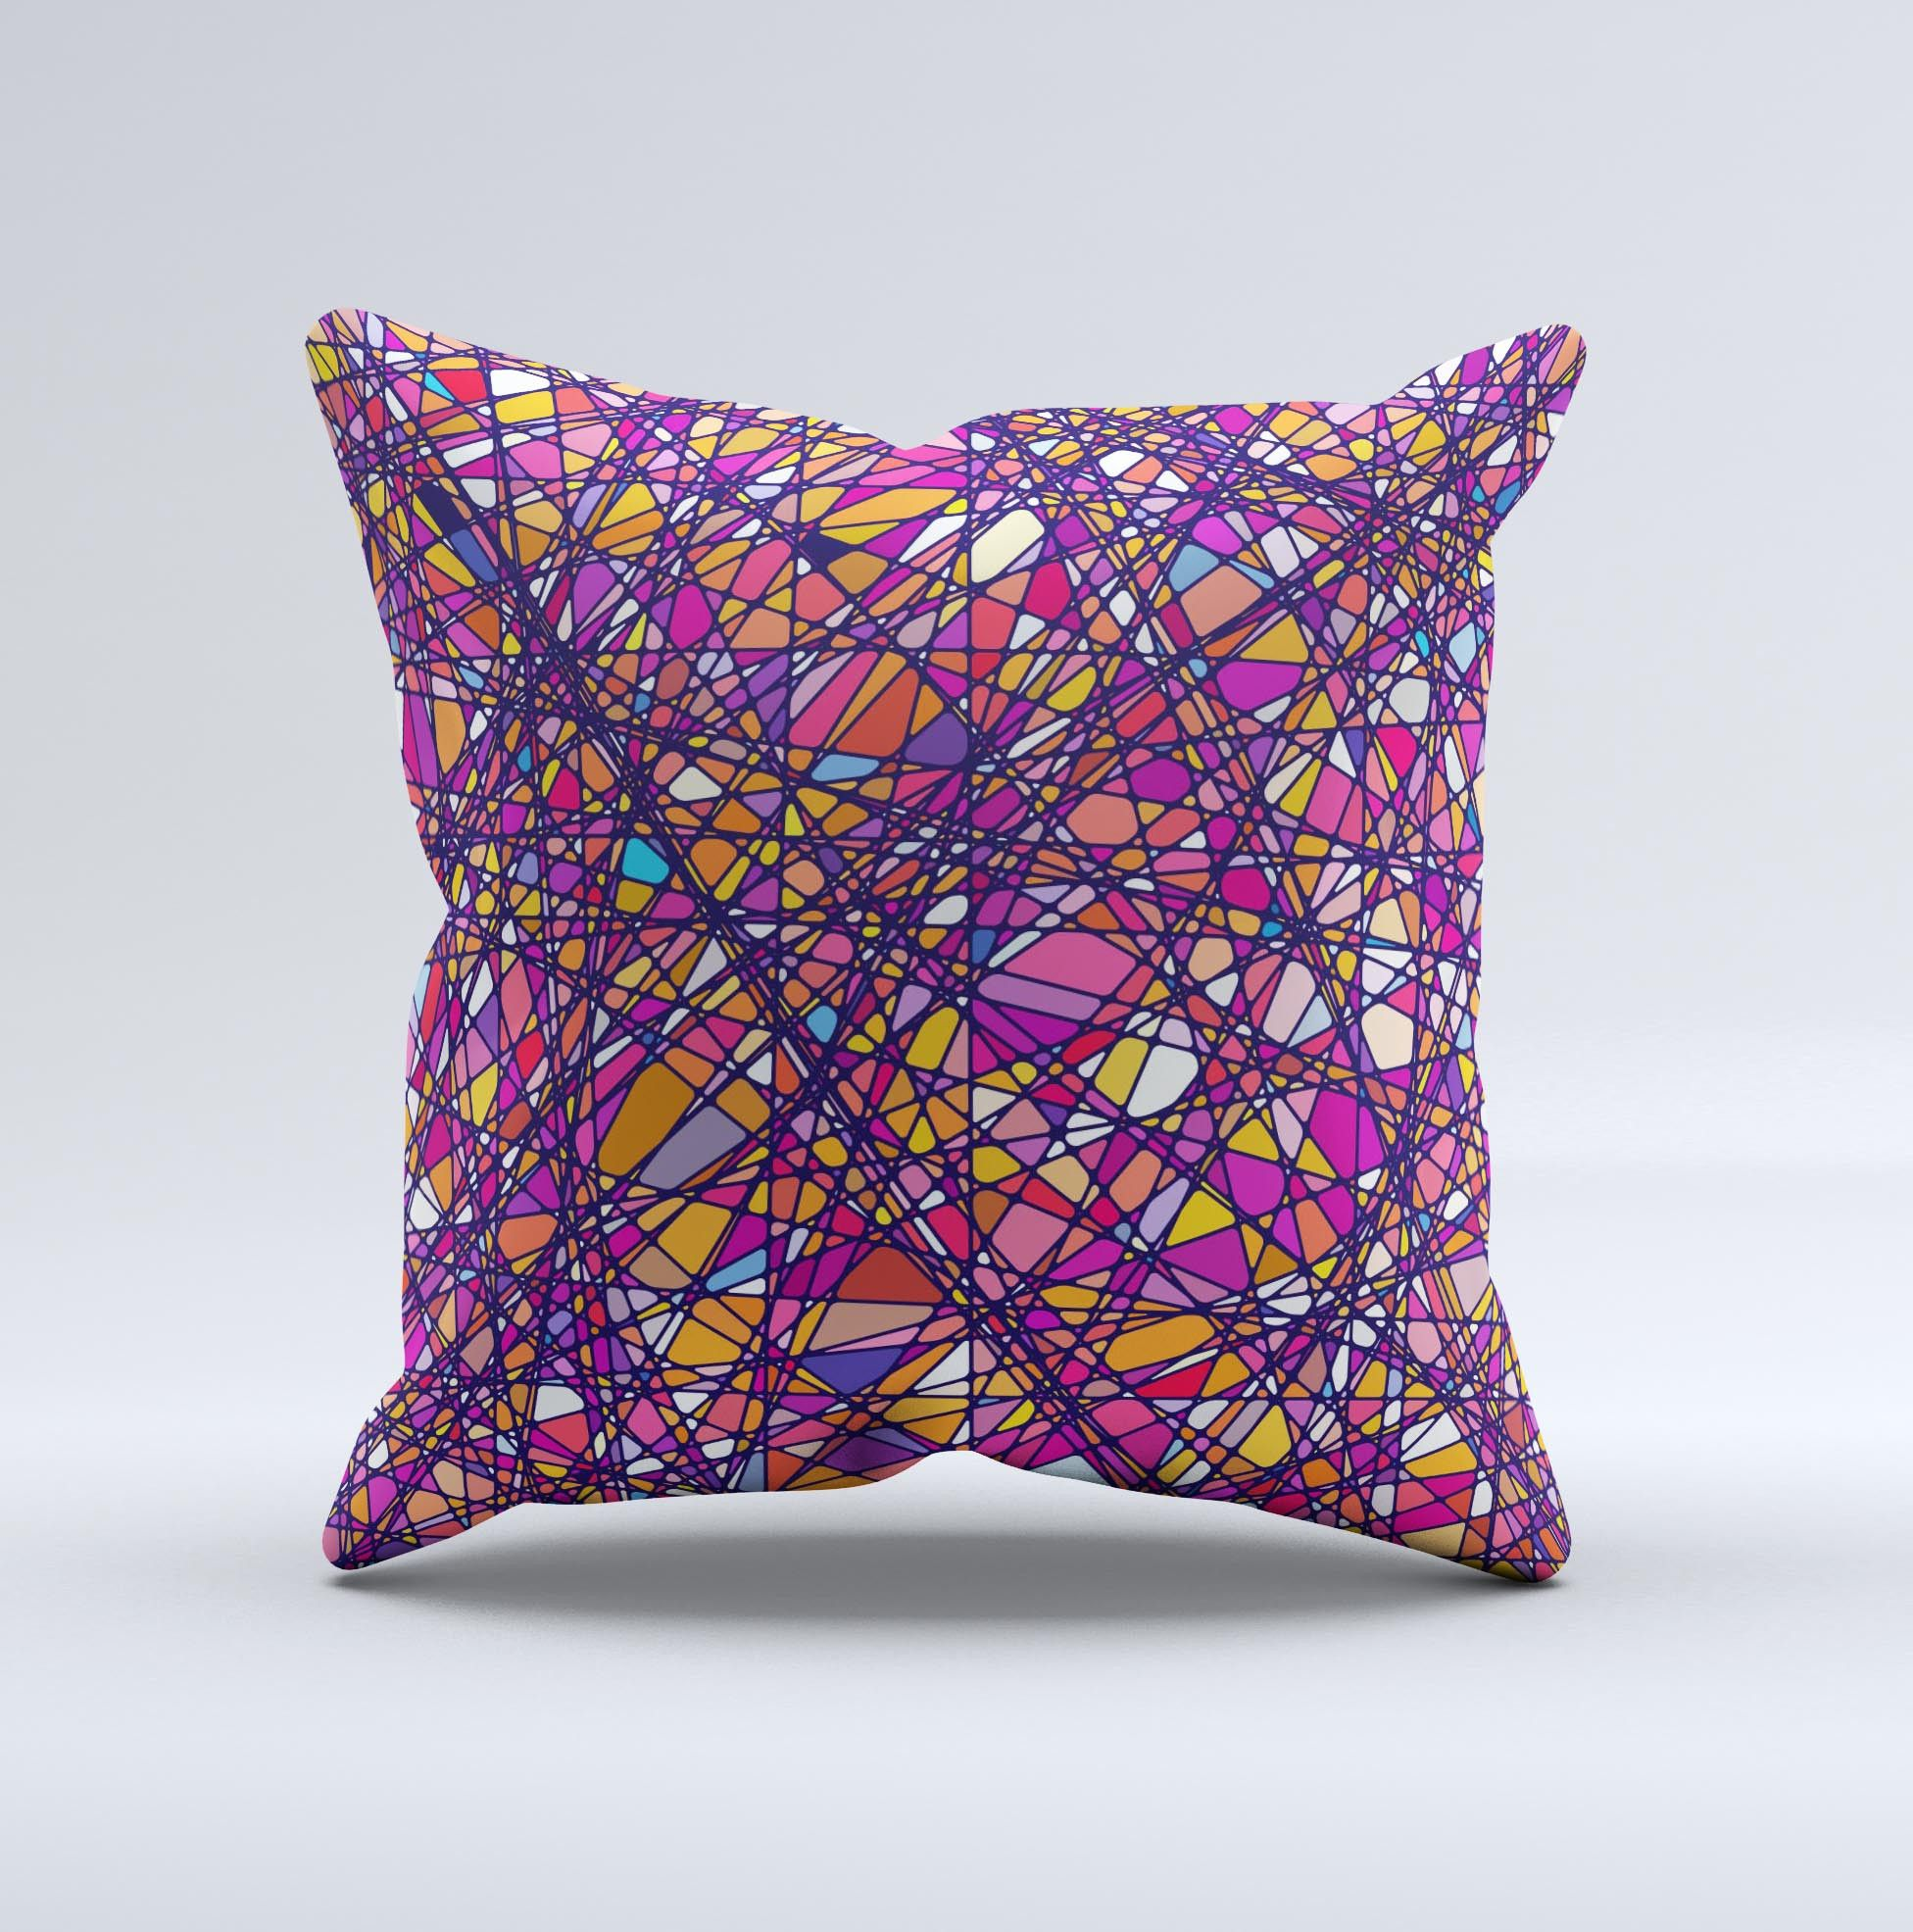 Shards of Neon Color  Ink-Fuzed Decorative Throw Pillow from DesignSkinz